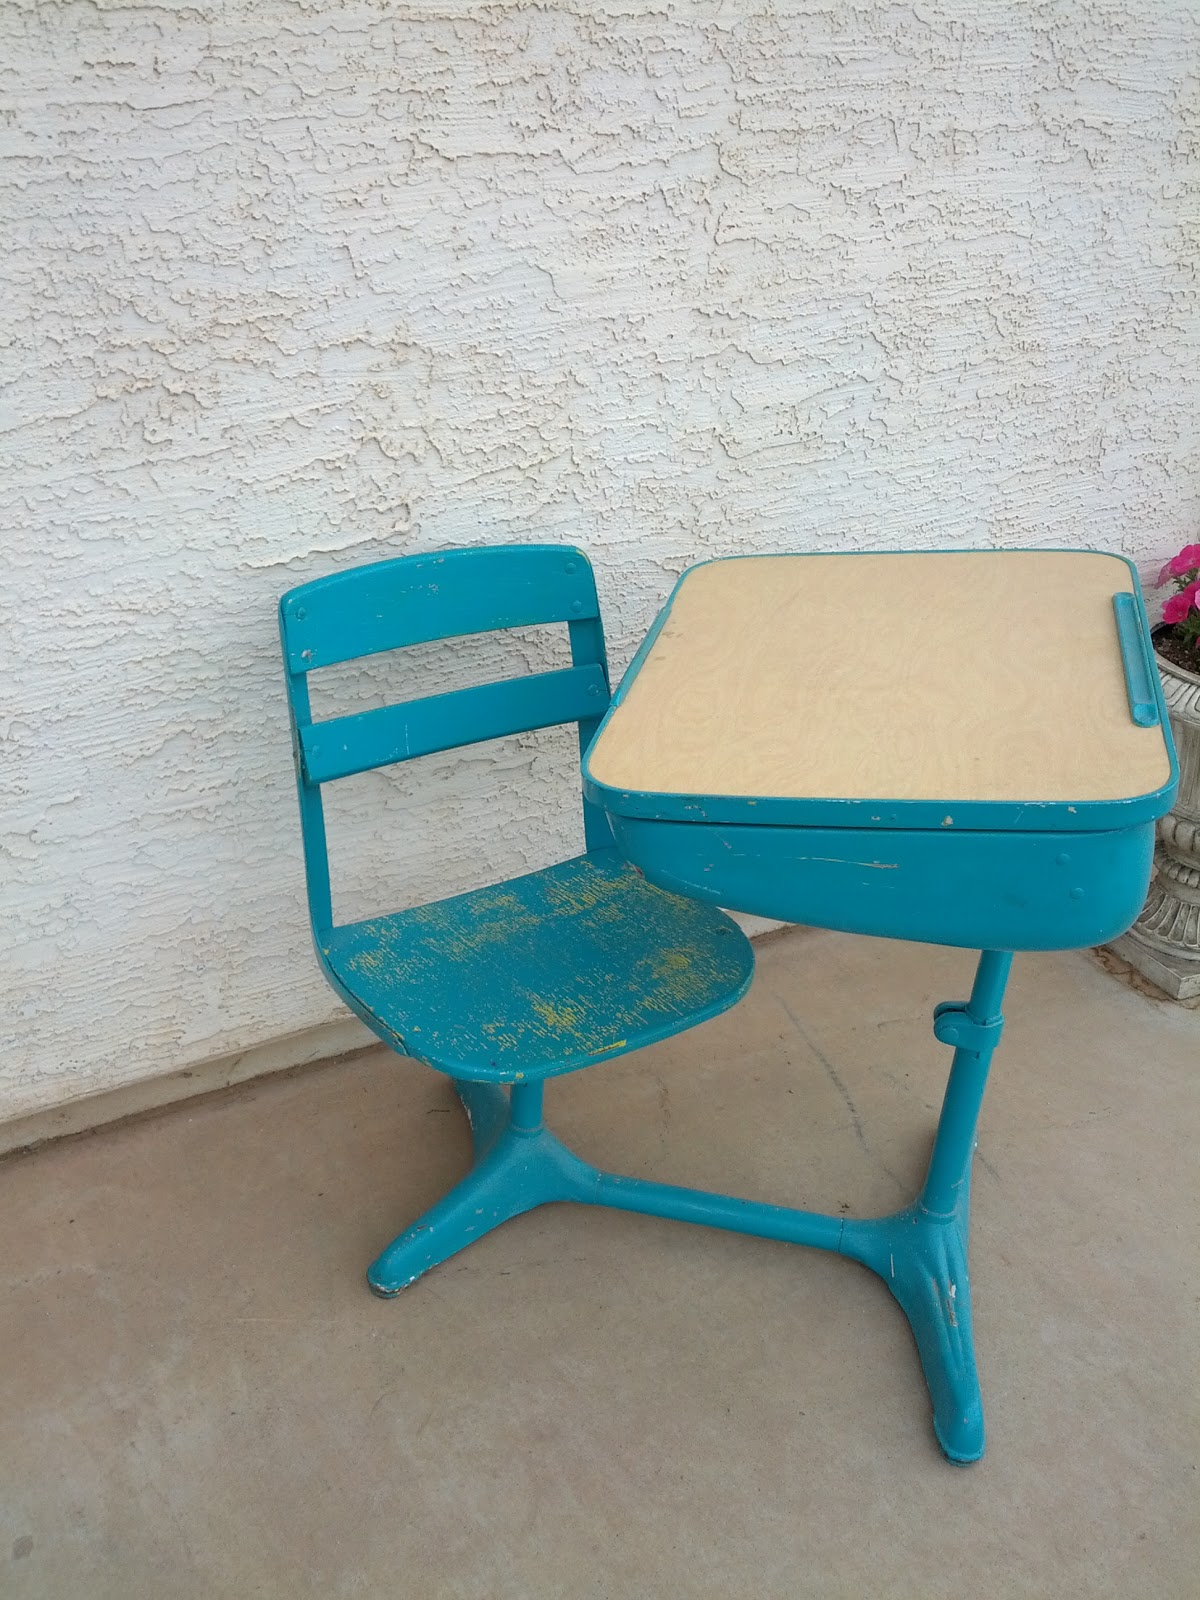 Country Chic Teal and yellow childrens school desk